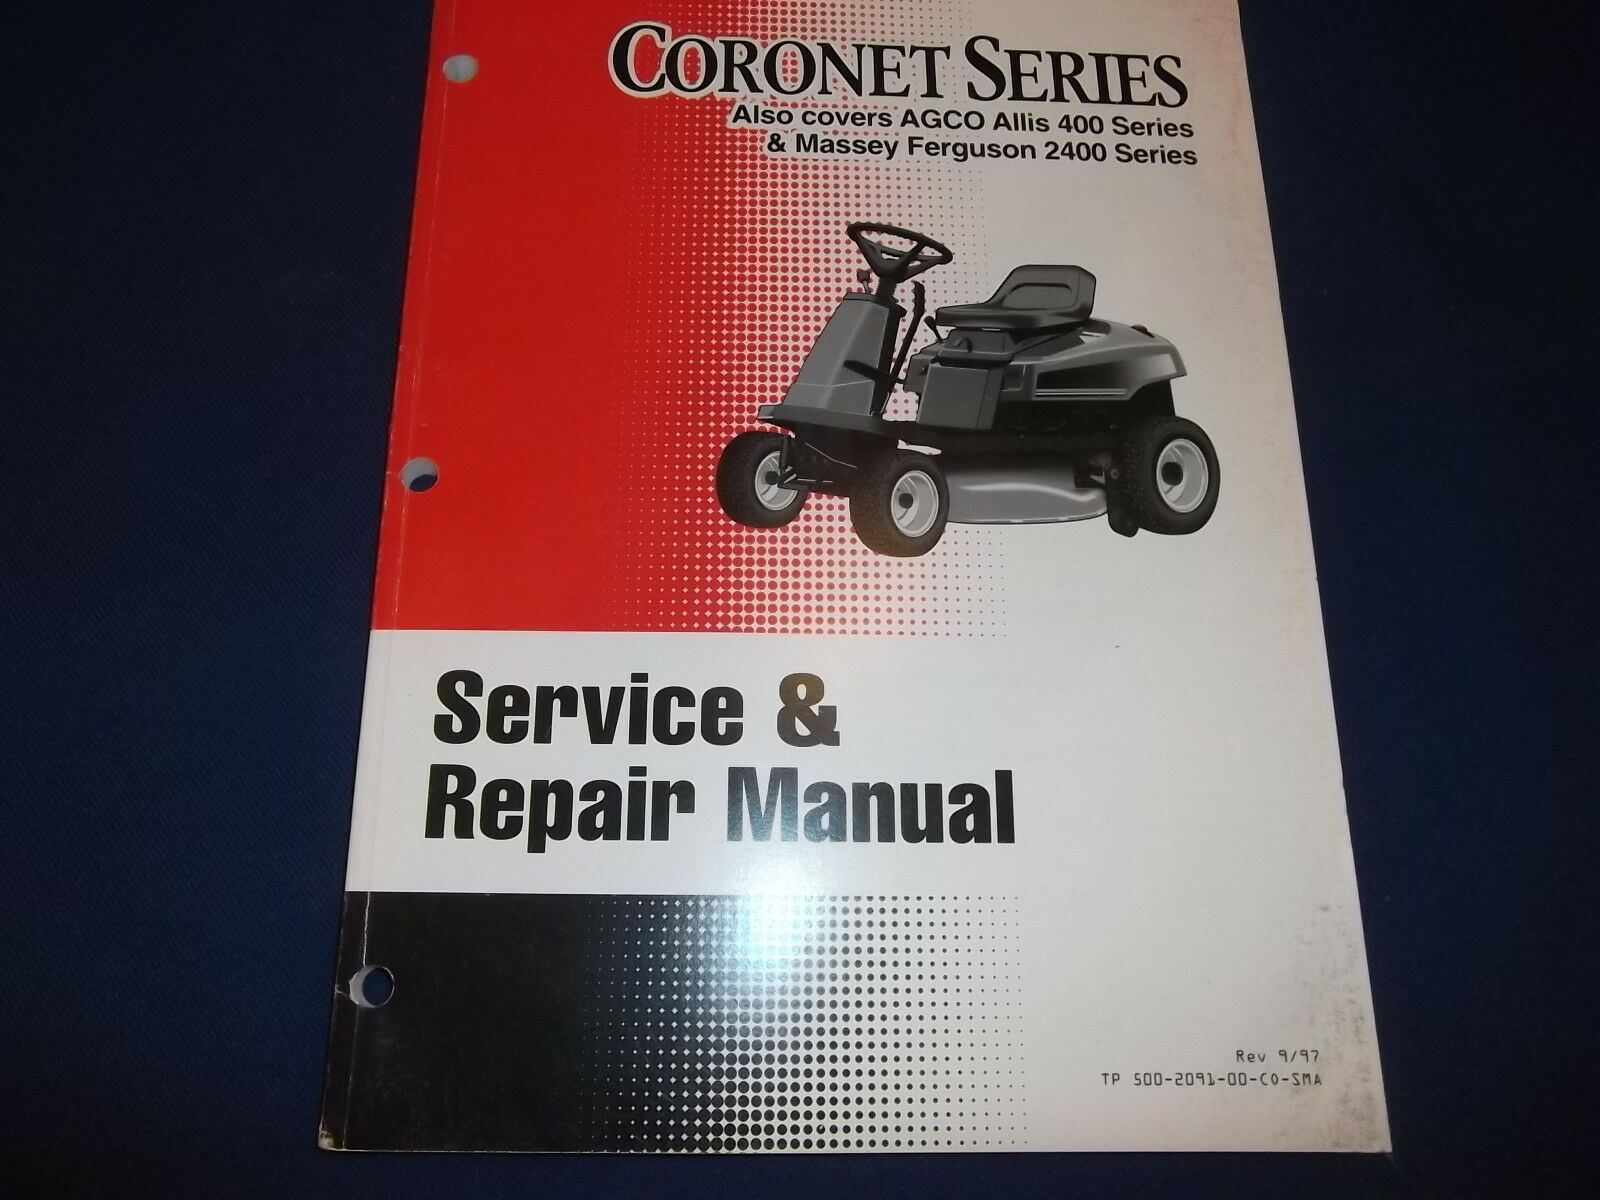 Coronet Massey Ferguson 2400 Allis 400 Lawn Mower Service Shop Repair Manual  1 of 4Only 1 available See More